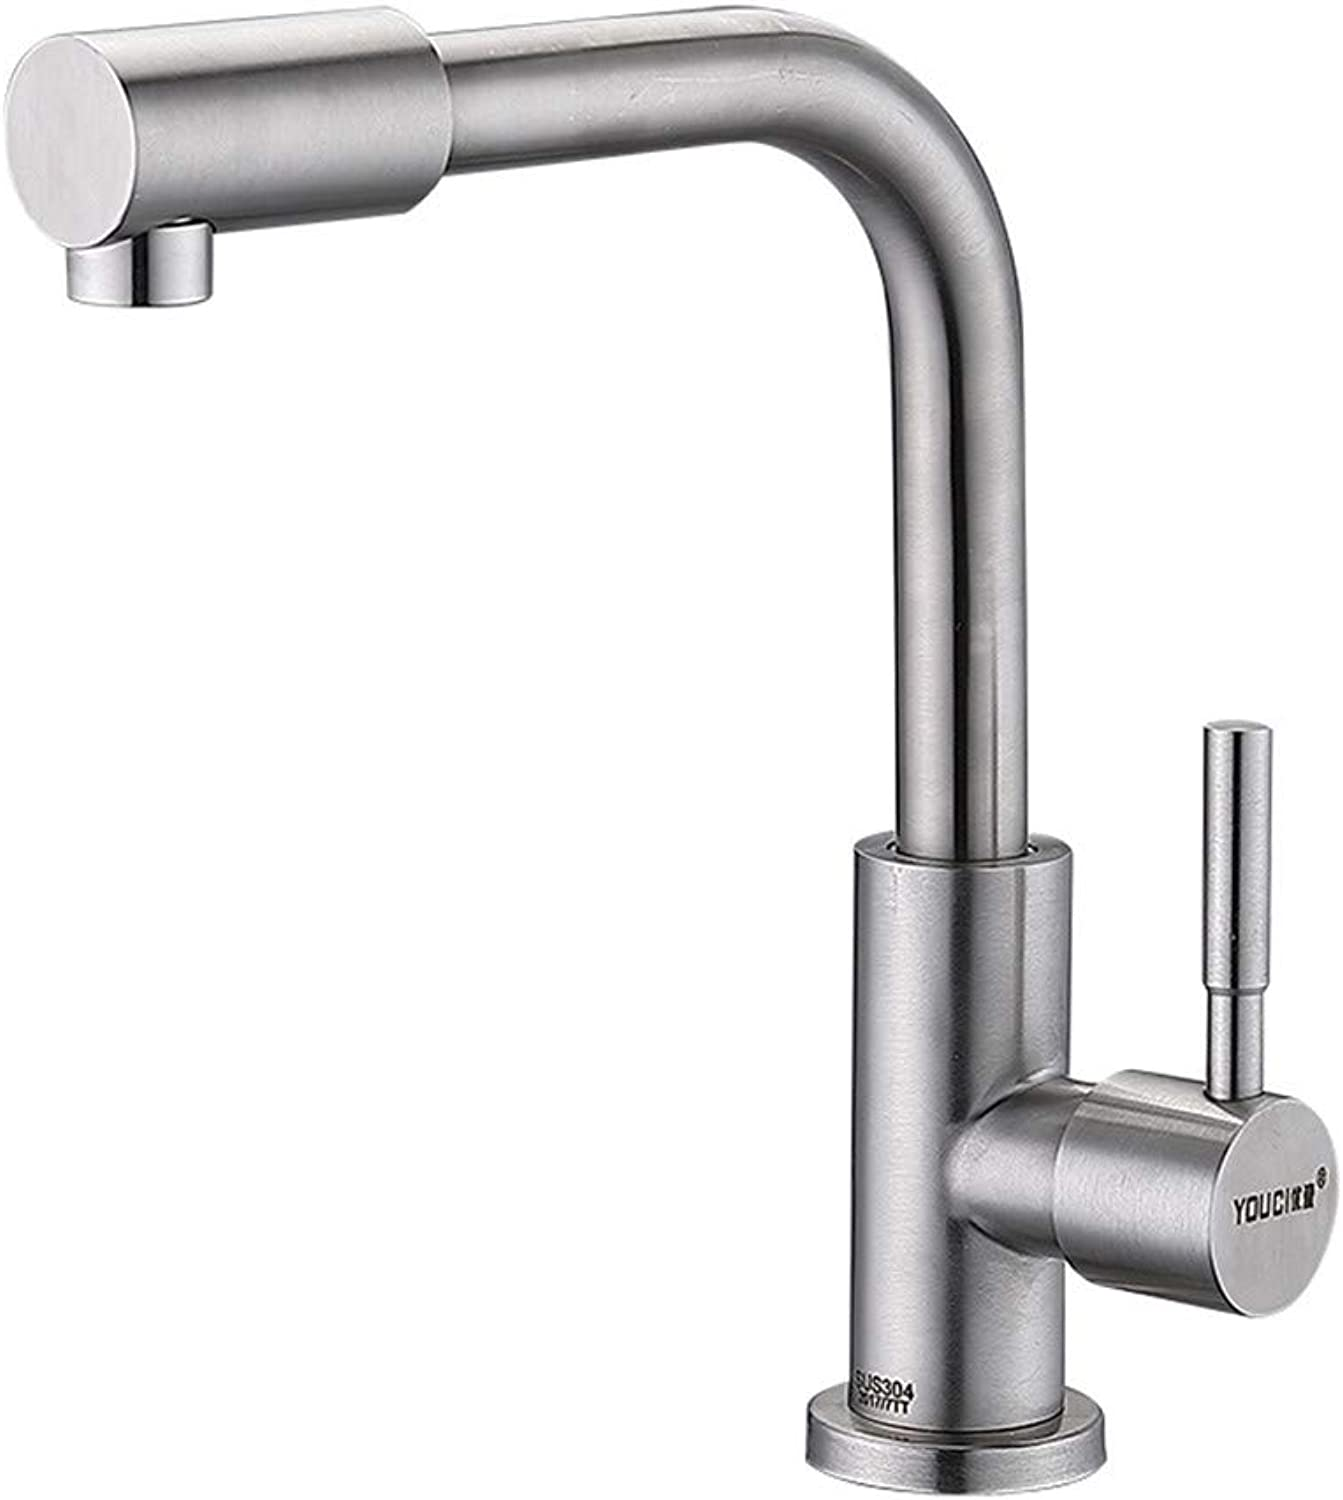 Decorry 304 Stainless Steel redary Joint Vanity Basin Mixer Single Cold Water Tap